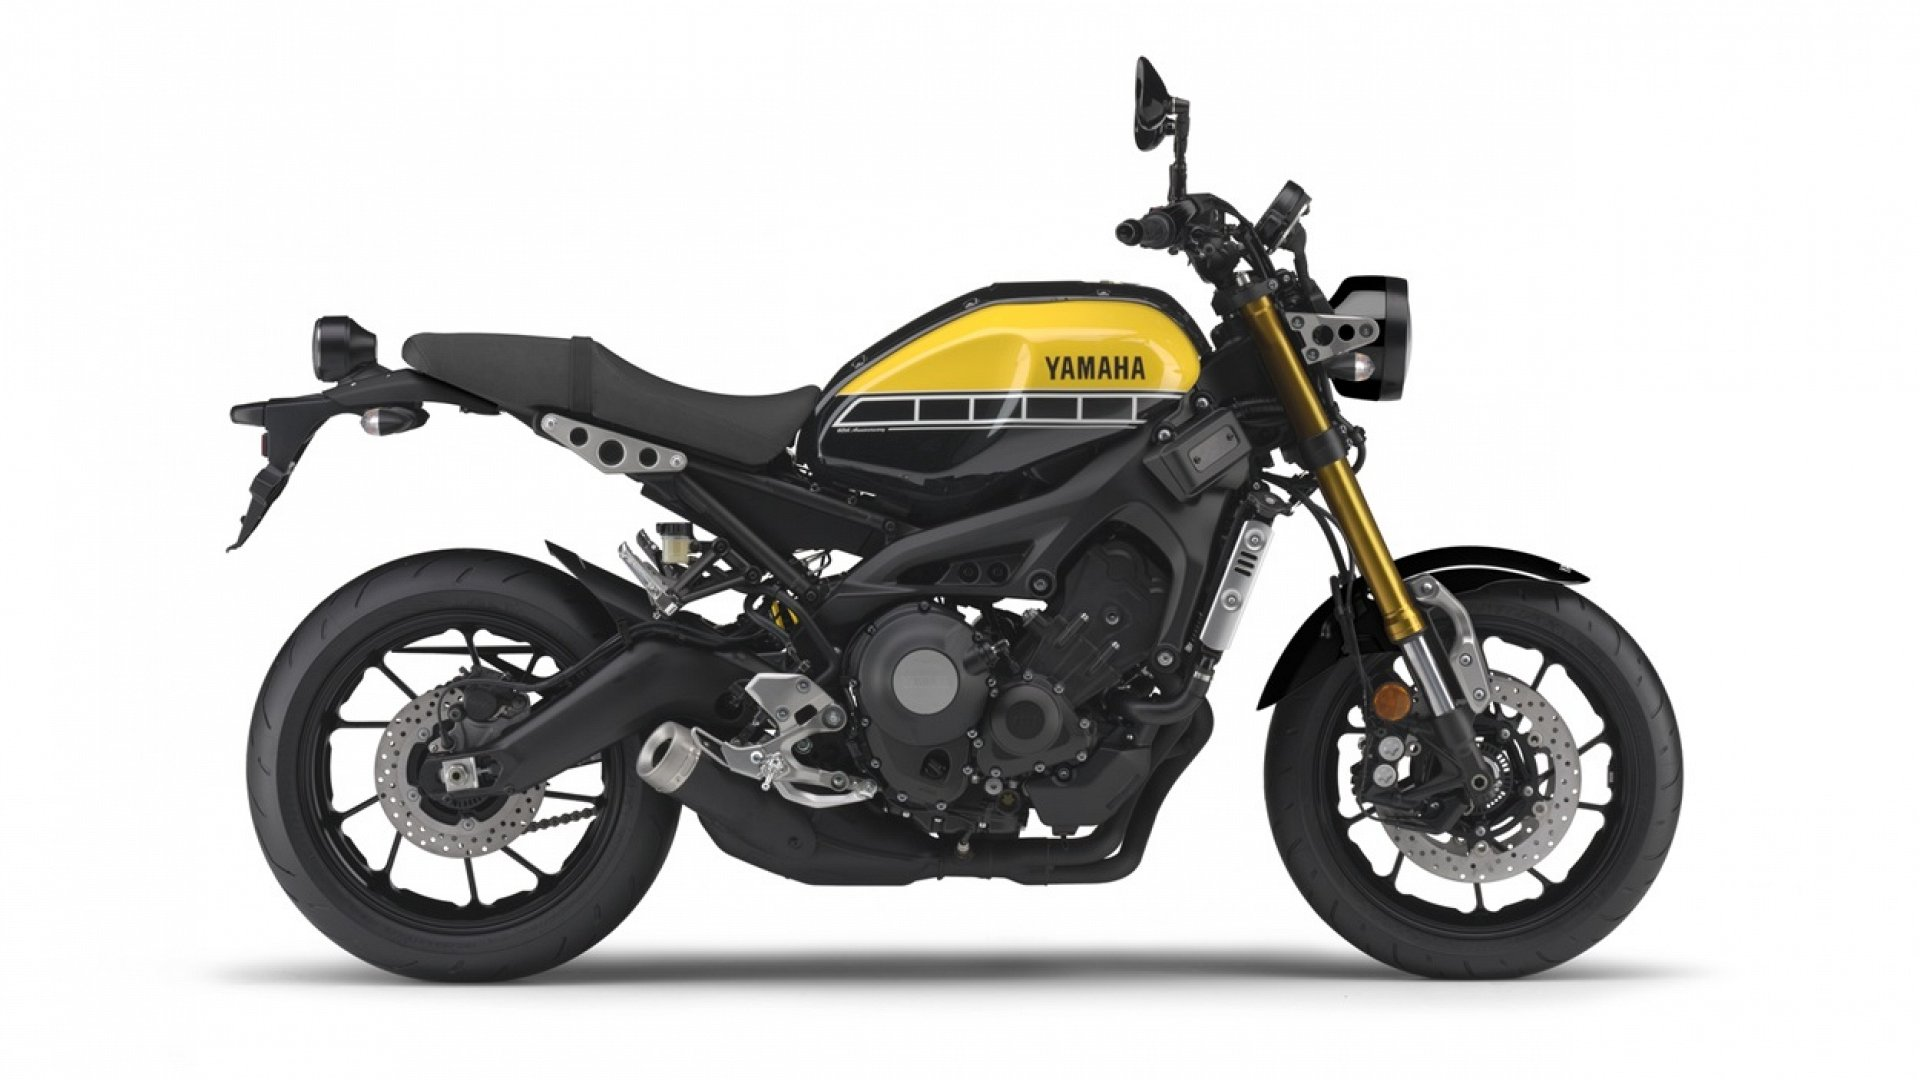 New 2016 Yamaha XSR900 for sale. Finance available and part exchange ...: www.cmcbikes.com/new-yamaha-motorcycles/2016-yamaha-xsr900